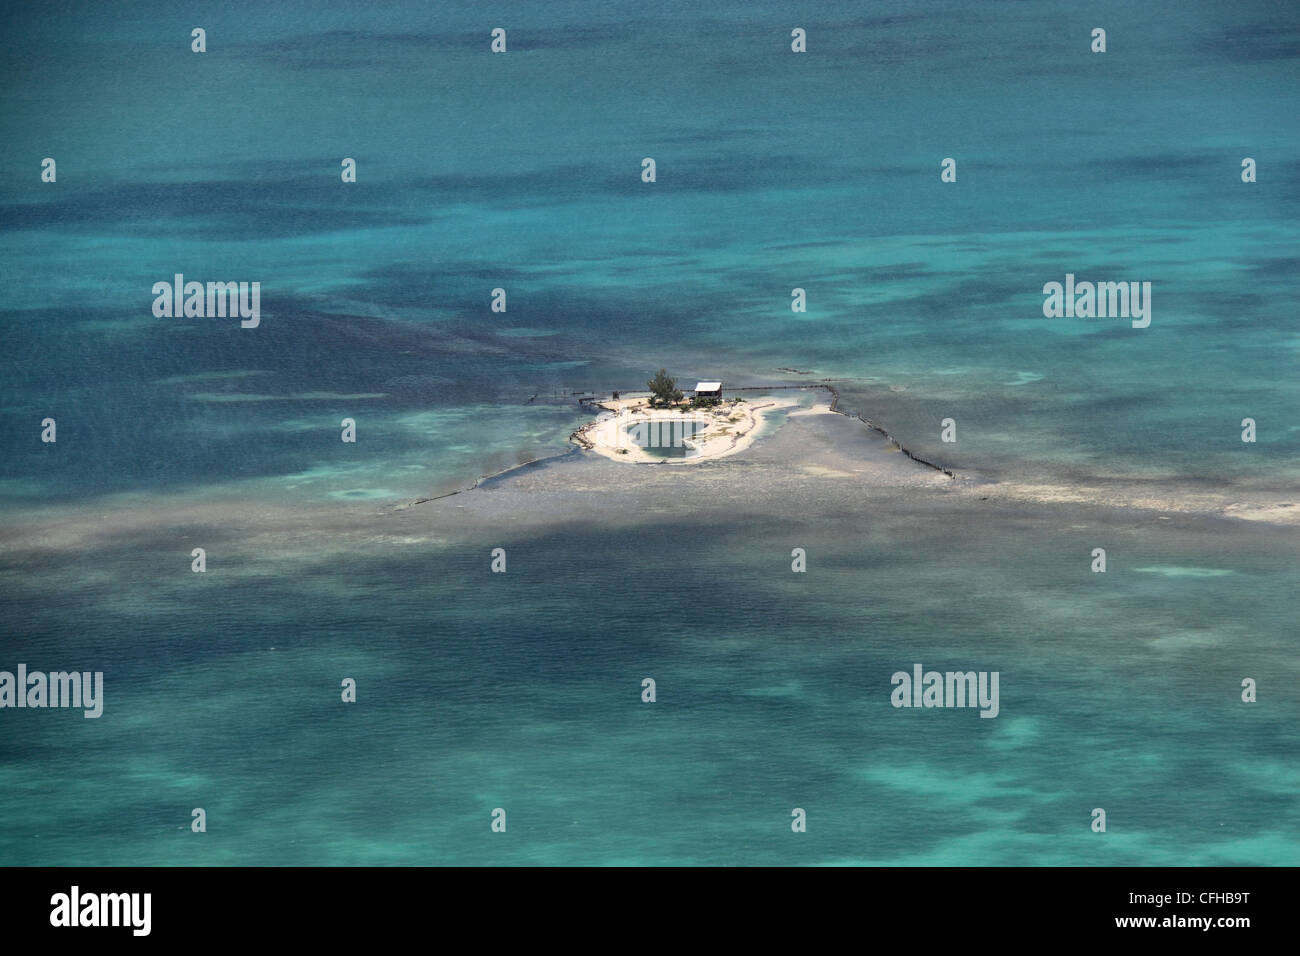 A private Caribbean desert island on the Belize Barrier Reef, Belize, Caribbean, Central America - Stock Image